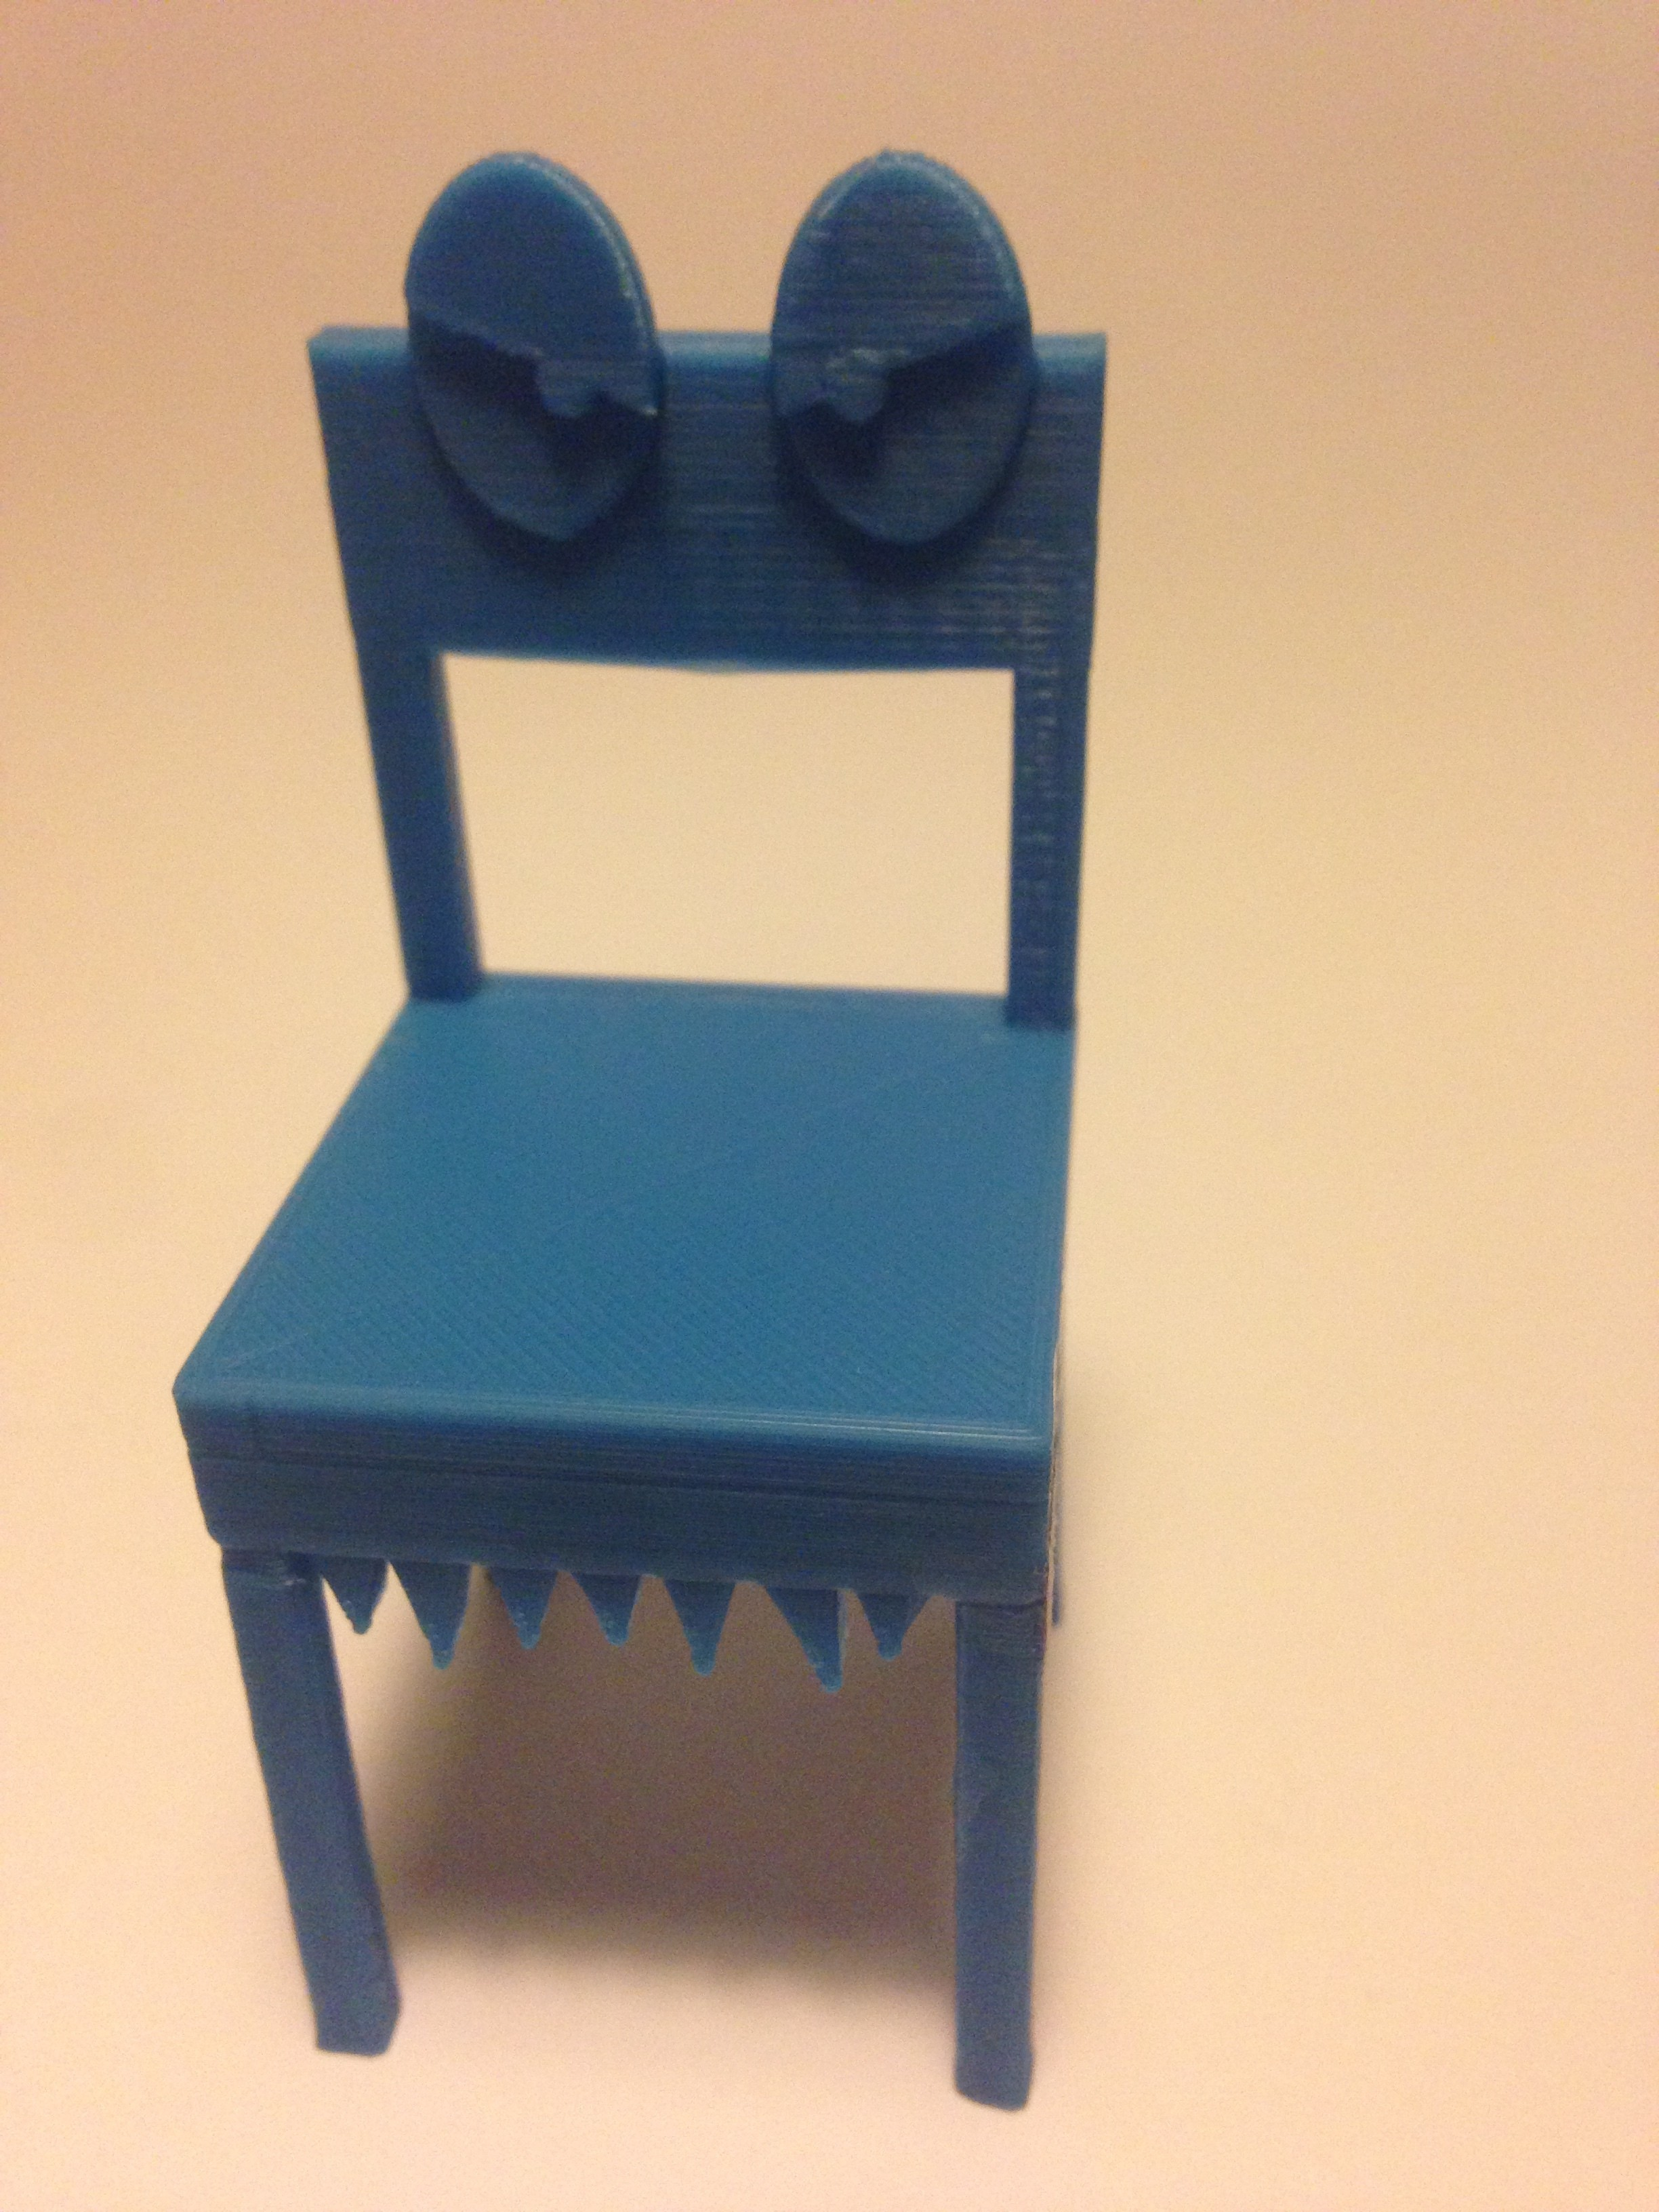 IMG_9544.JPG Download free STL file ANGRY CHAIR • 3D printer object, clement83_13